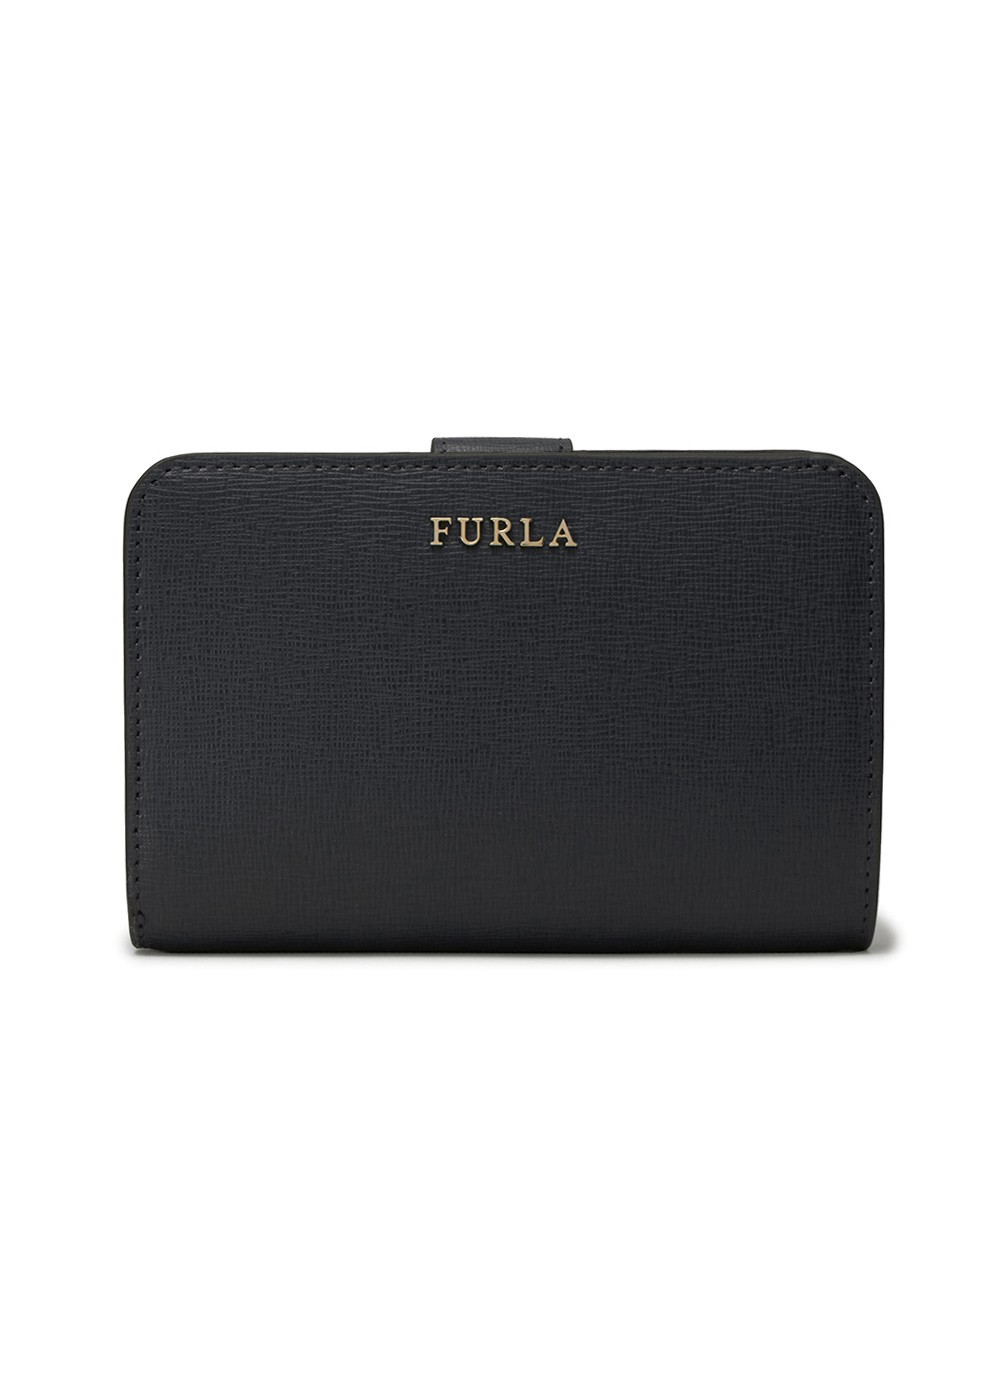 BABYLON M ZIP AROUND|Onyx|レディース財布|FURLA - wallet and more